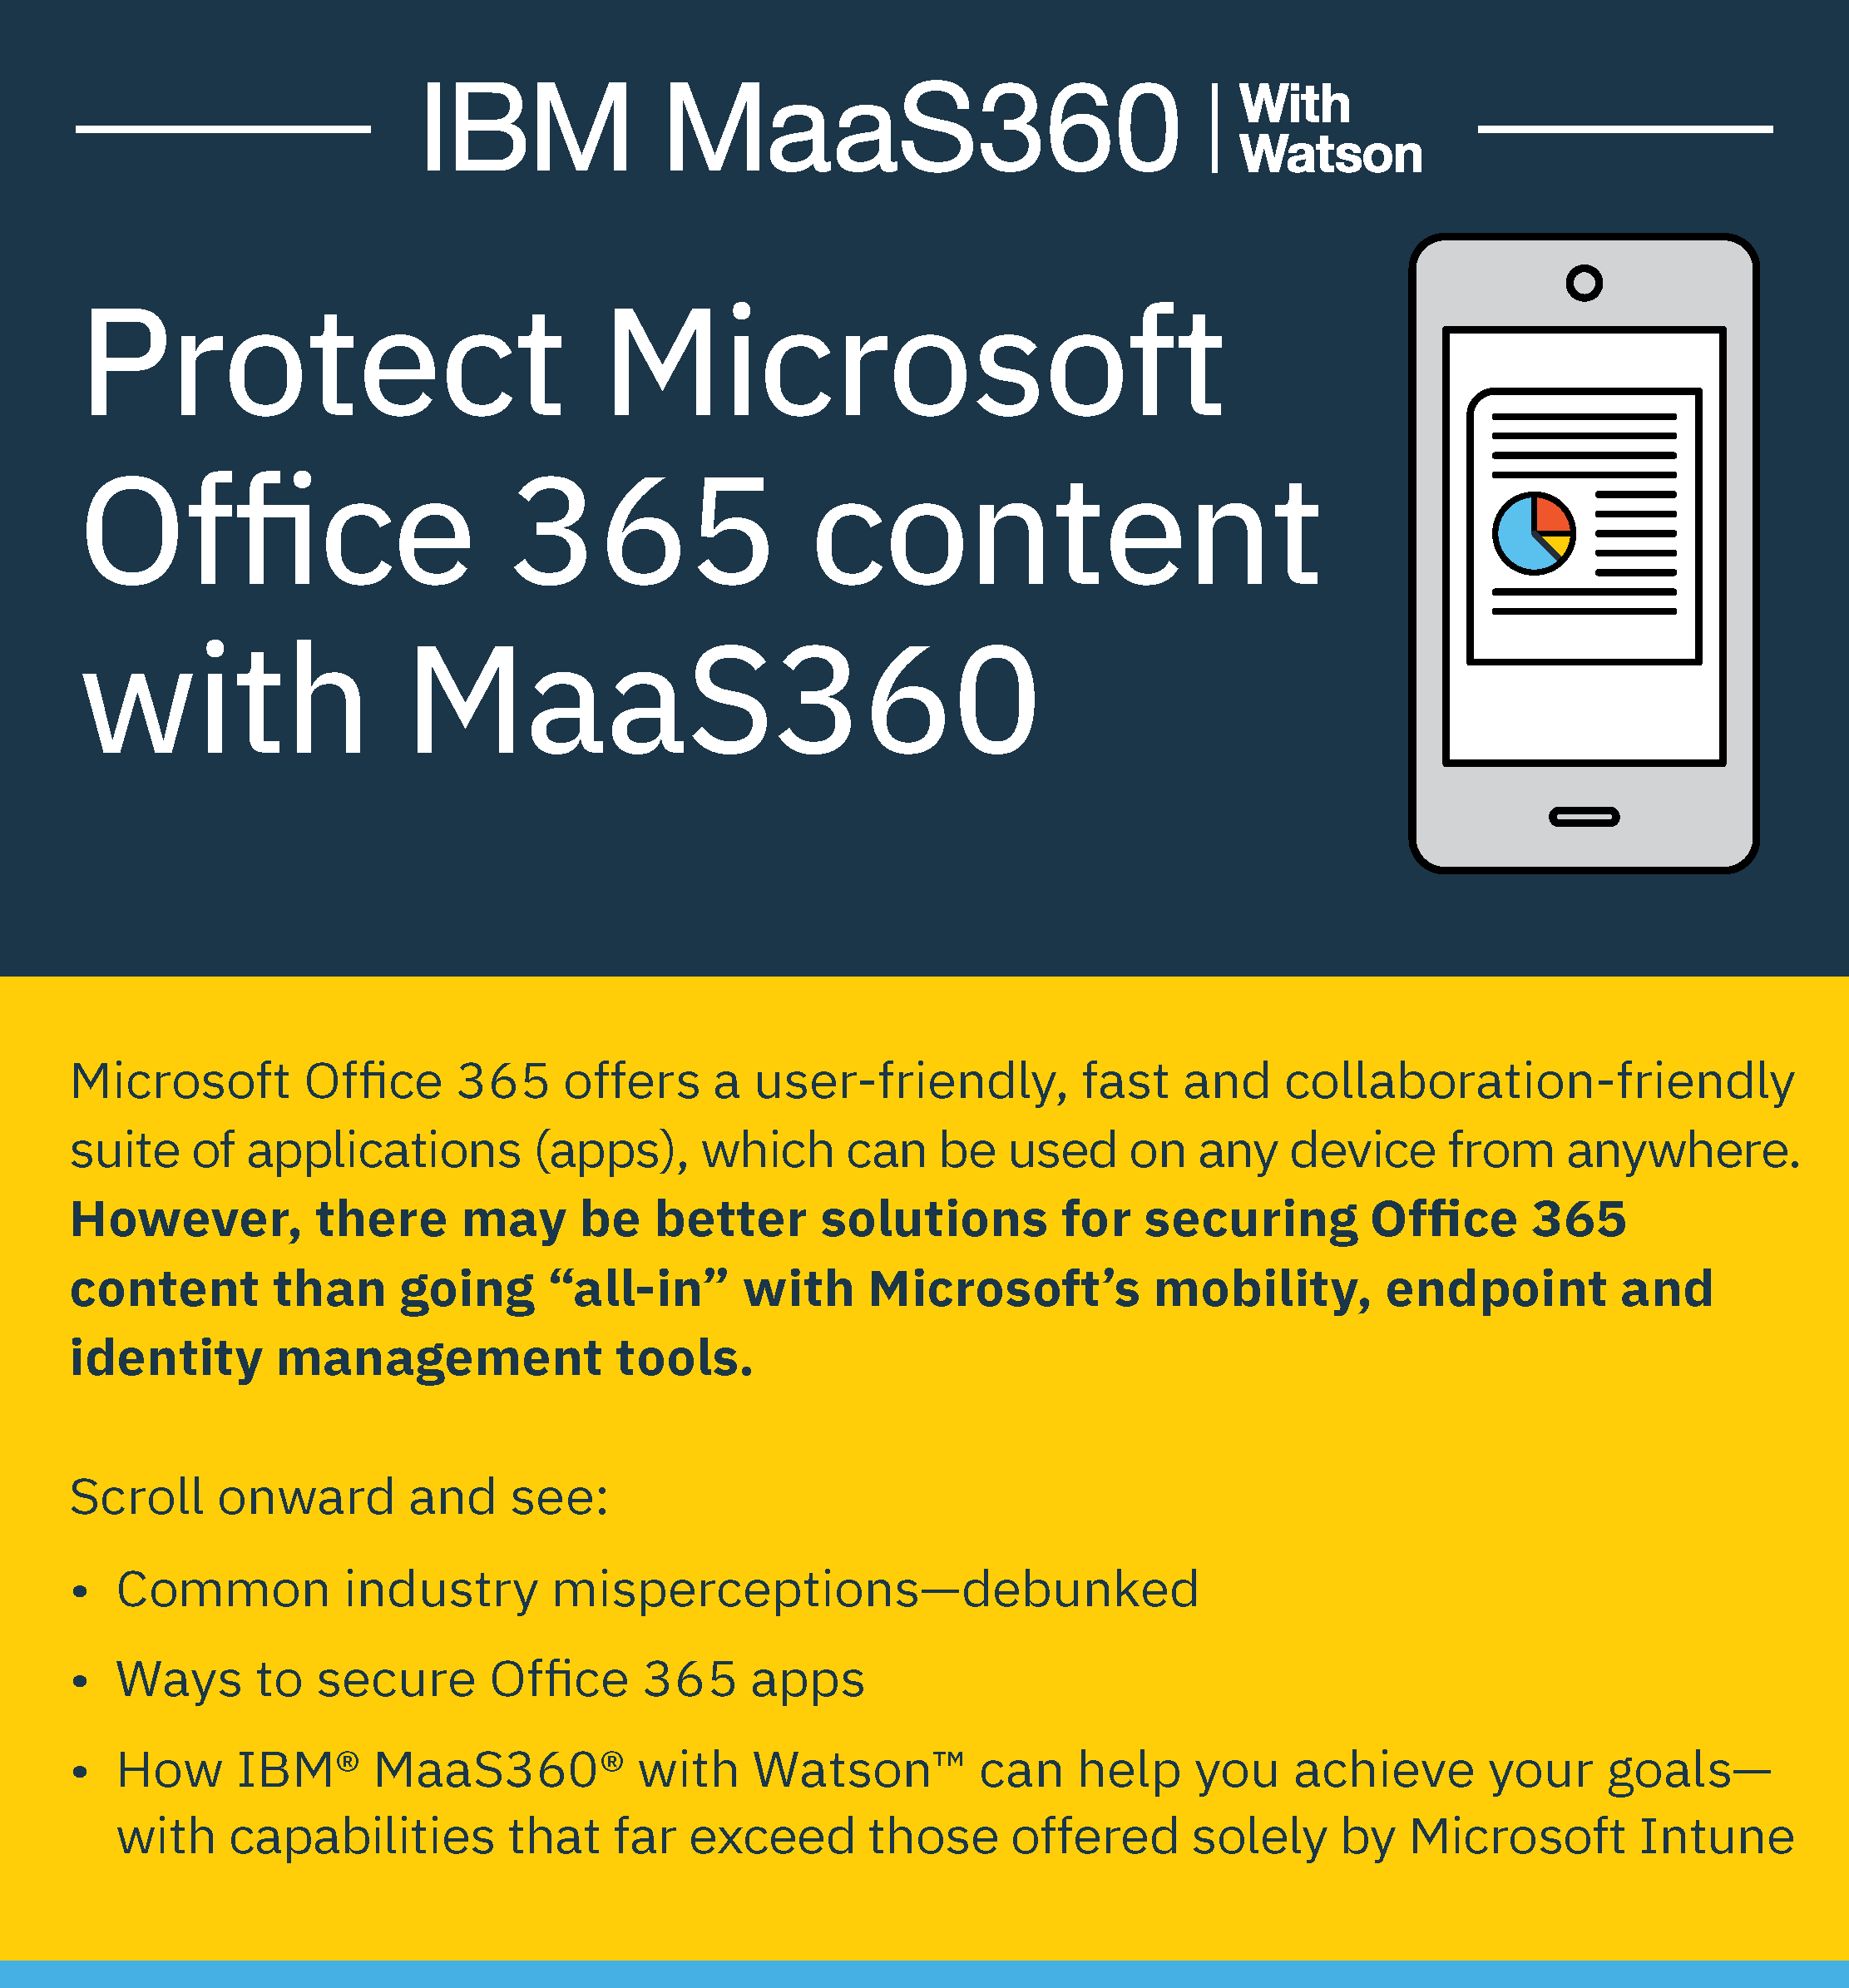 https://www.nolinetel.com/wp-content/uploads/2019/08/Protect-Ms-Office-360-with-MaaS360-1.png